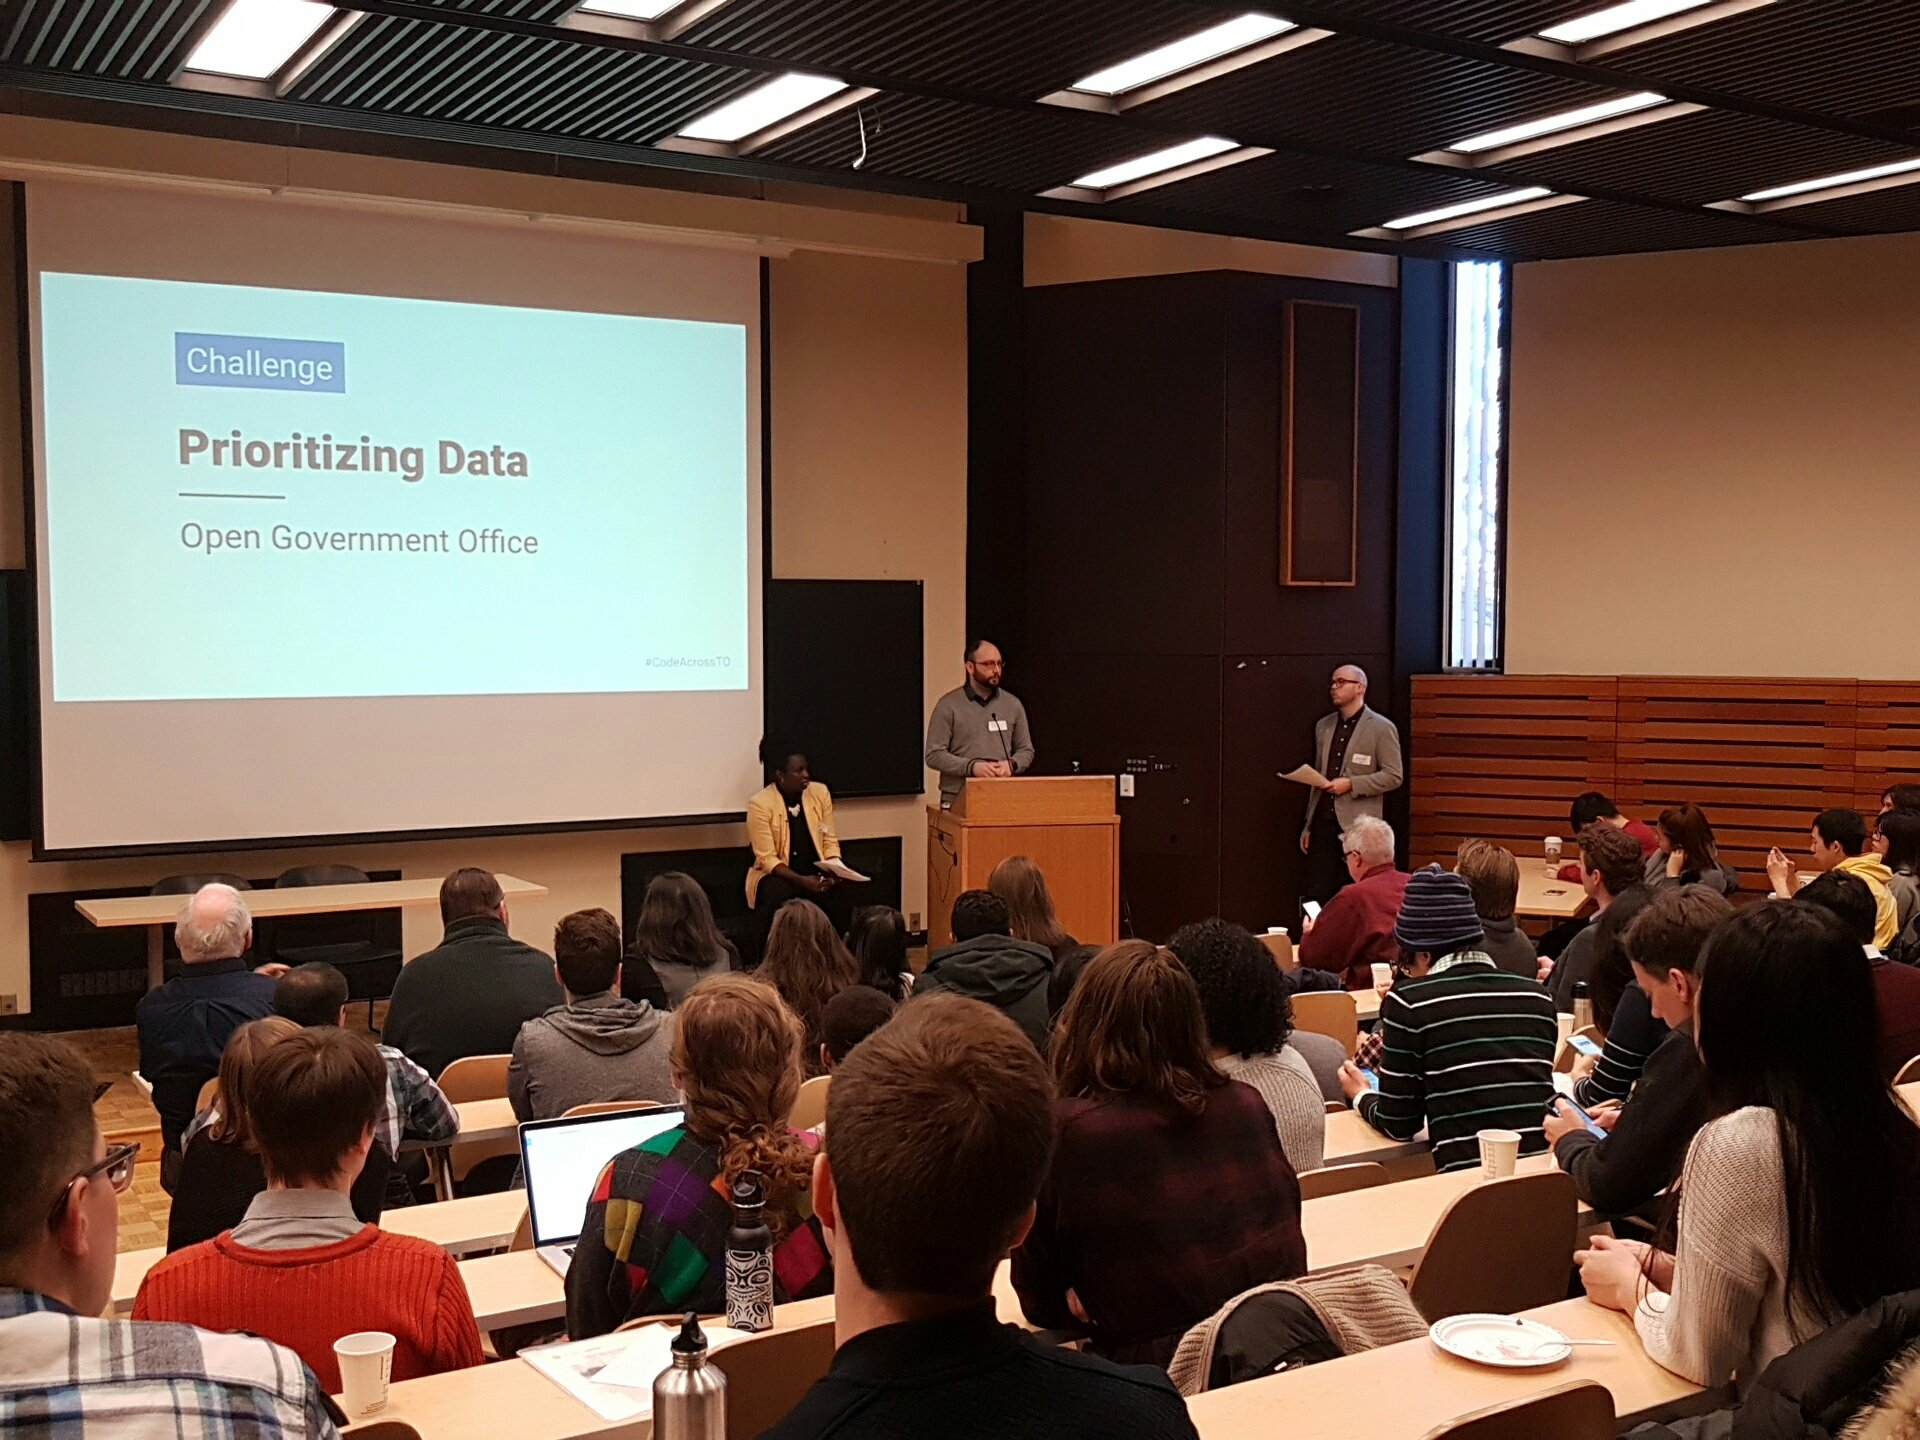 """""""Are there any open data enthusiasts in the room?"""" Asks @thePaulV from Ontario Gov. Room cheers! #OpenDataDay #CodeAcrossTO https://t.co/yeIa9V4jvs"""